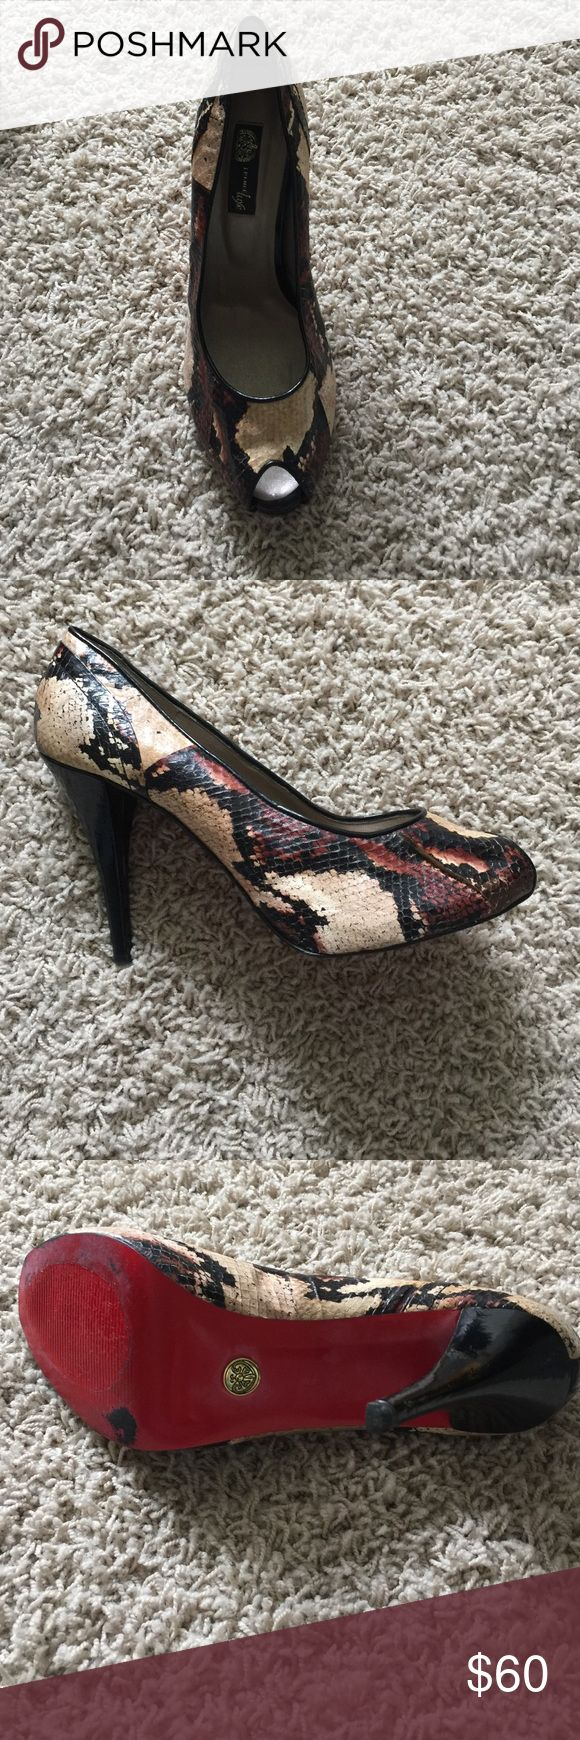 J.Renee luxe peep toe snake skin pumps Fun peep toe shoe with red sole!! You will love them and very versatile!! J. Renee luxe Shoes Heels